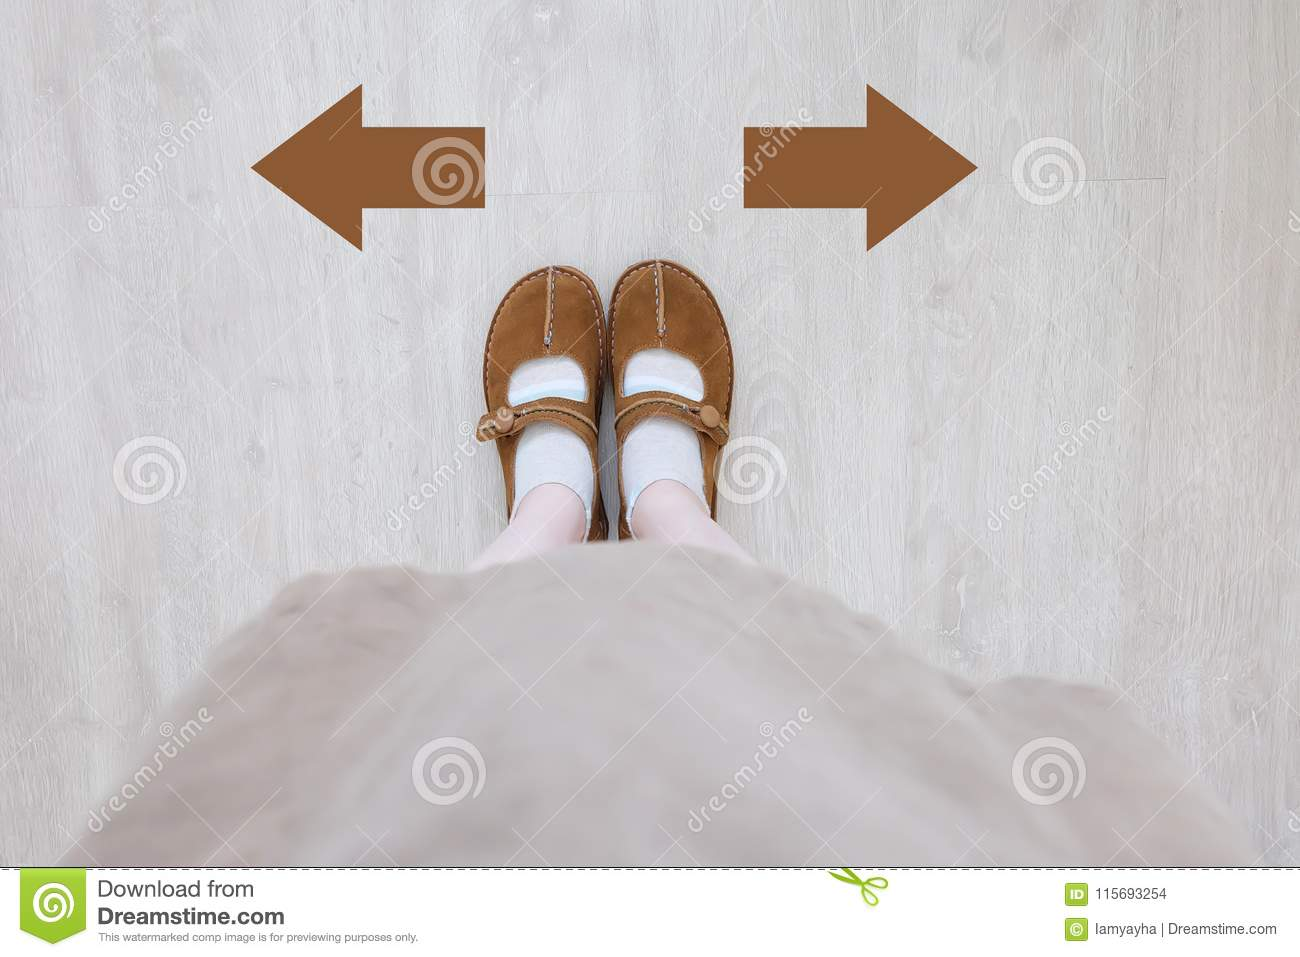 Top View of Brown Boot with Different Brown Decision Arrow. A Pair of Feet Standing. Shoes Walking Direction on Wooden